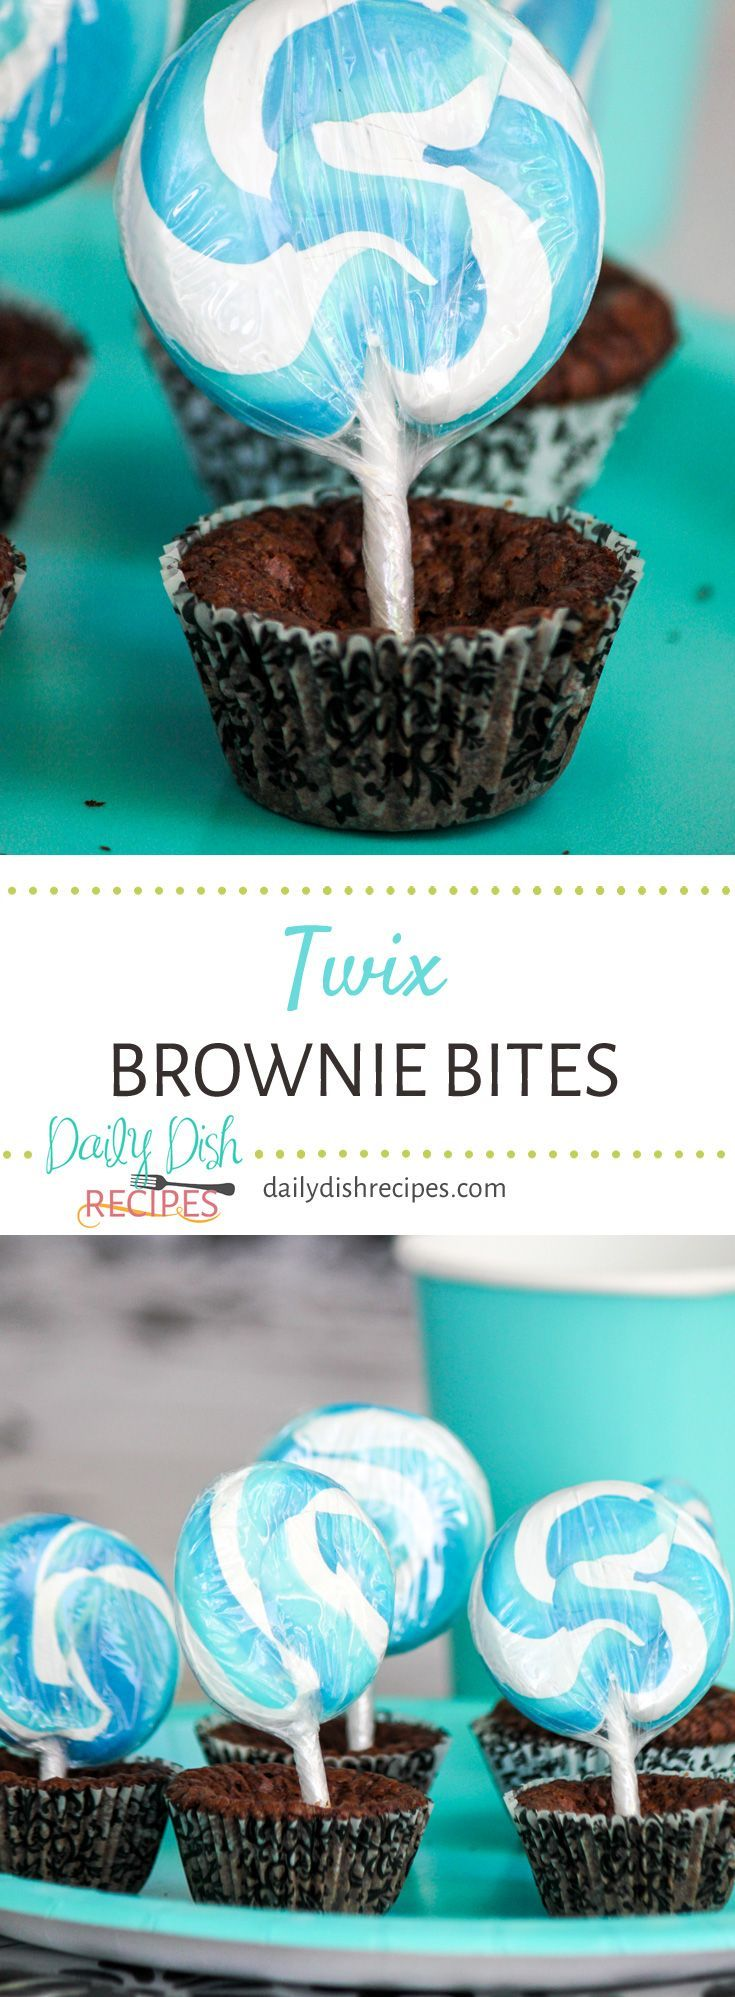 Gooey Caramel Twix Candy Bars combined into rich, moist and chocolaty brownie batter. Twix Brownie Bites are baked up in a mini muffin pan making them the perfect size for any party! via @dailydishrecipes